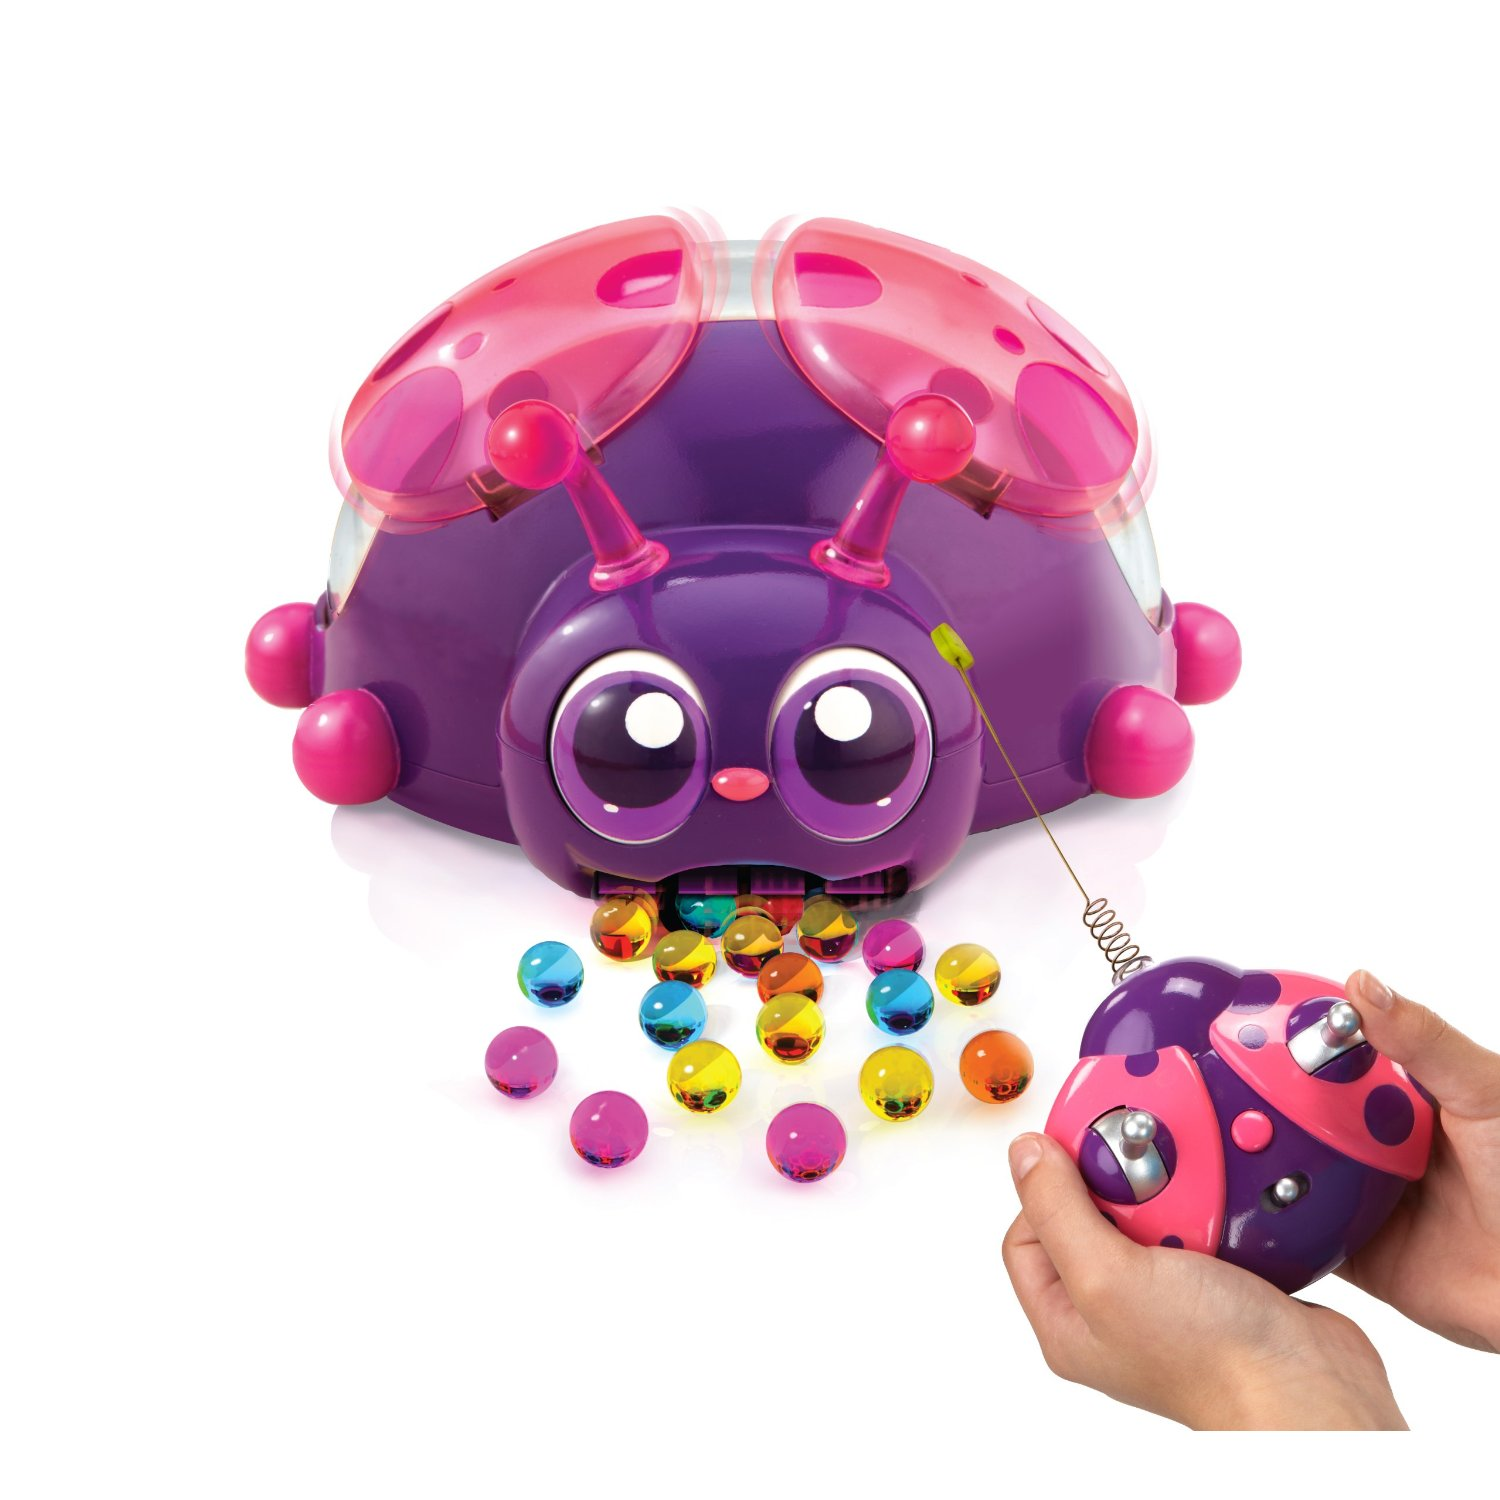 Girl Toys For 9 And Up : My springfield mommy orbeez the rc ladybug scooper